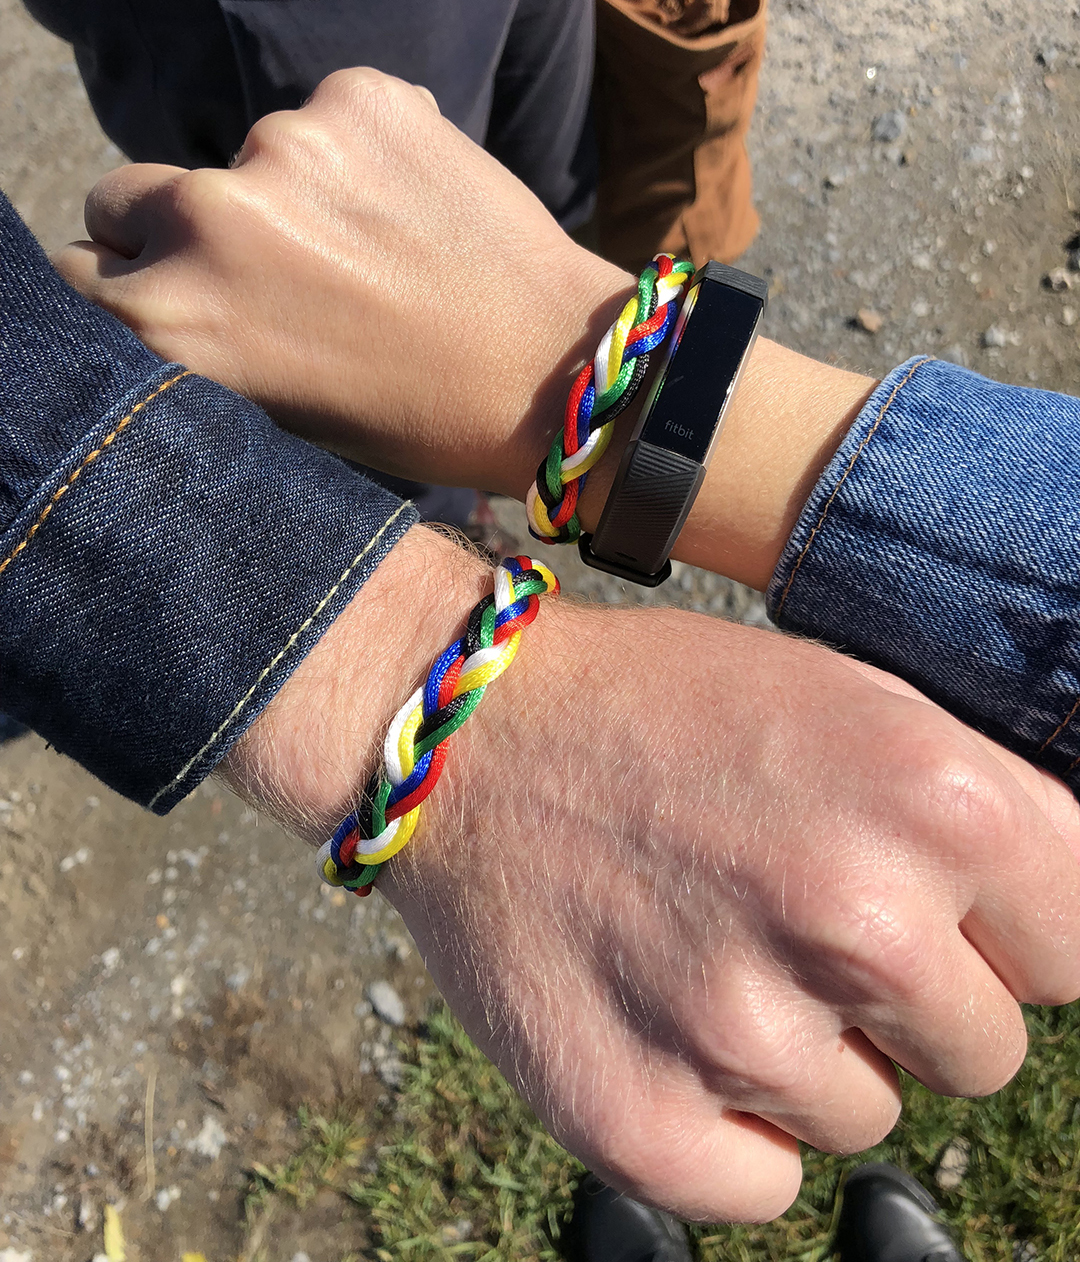 We received bracelets upon arrival to indicate we were guests but they made cool BFF bracelets! Why is Ben's hand so big?!